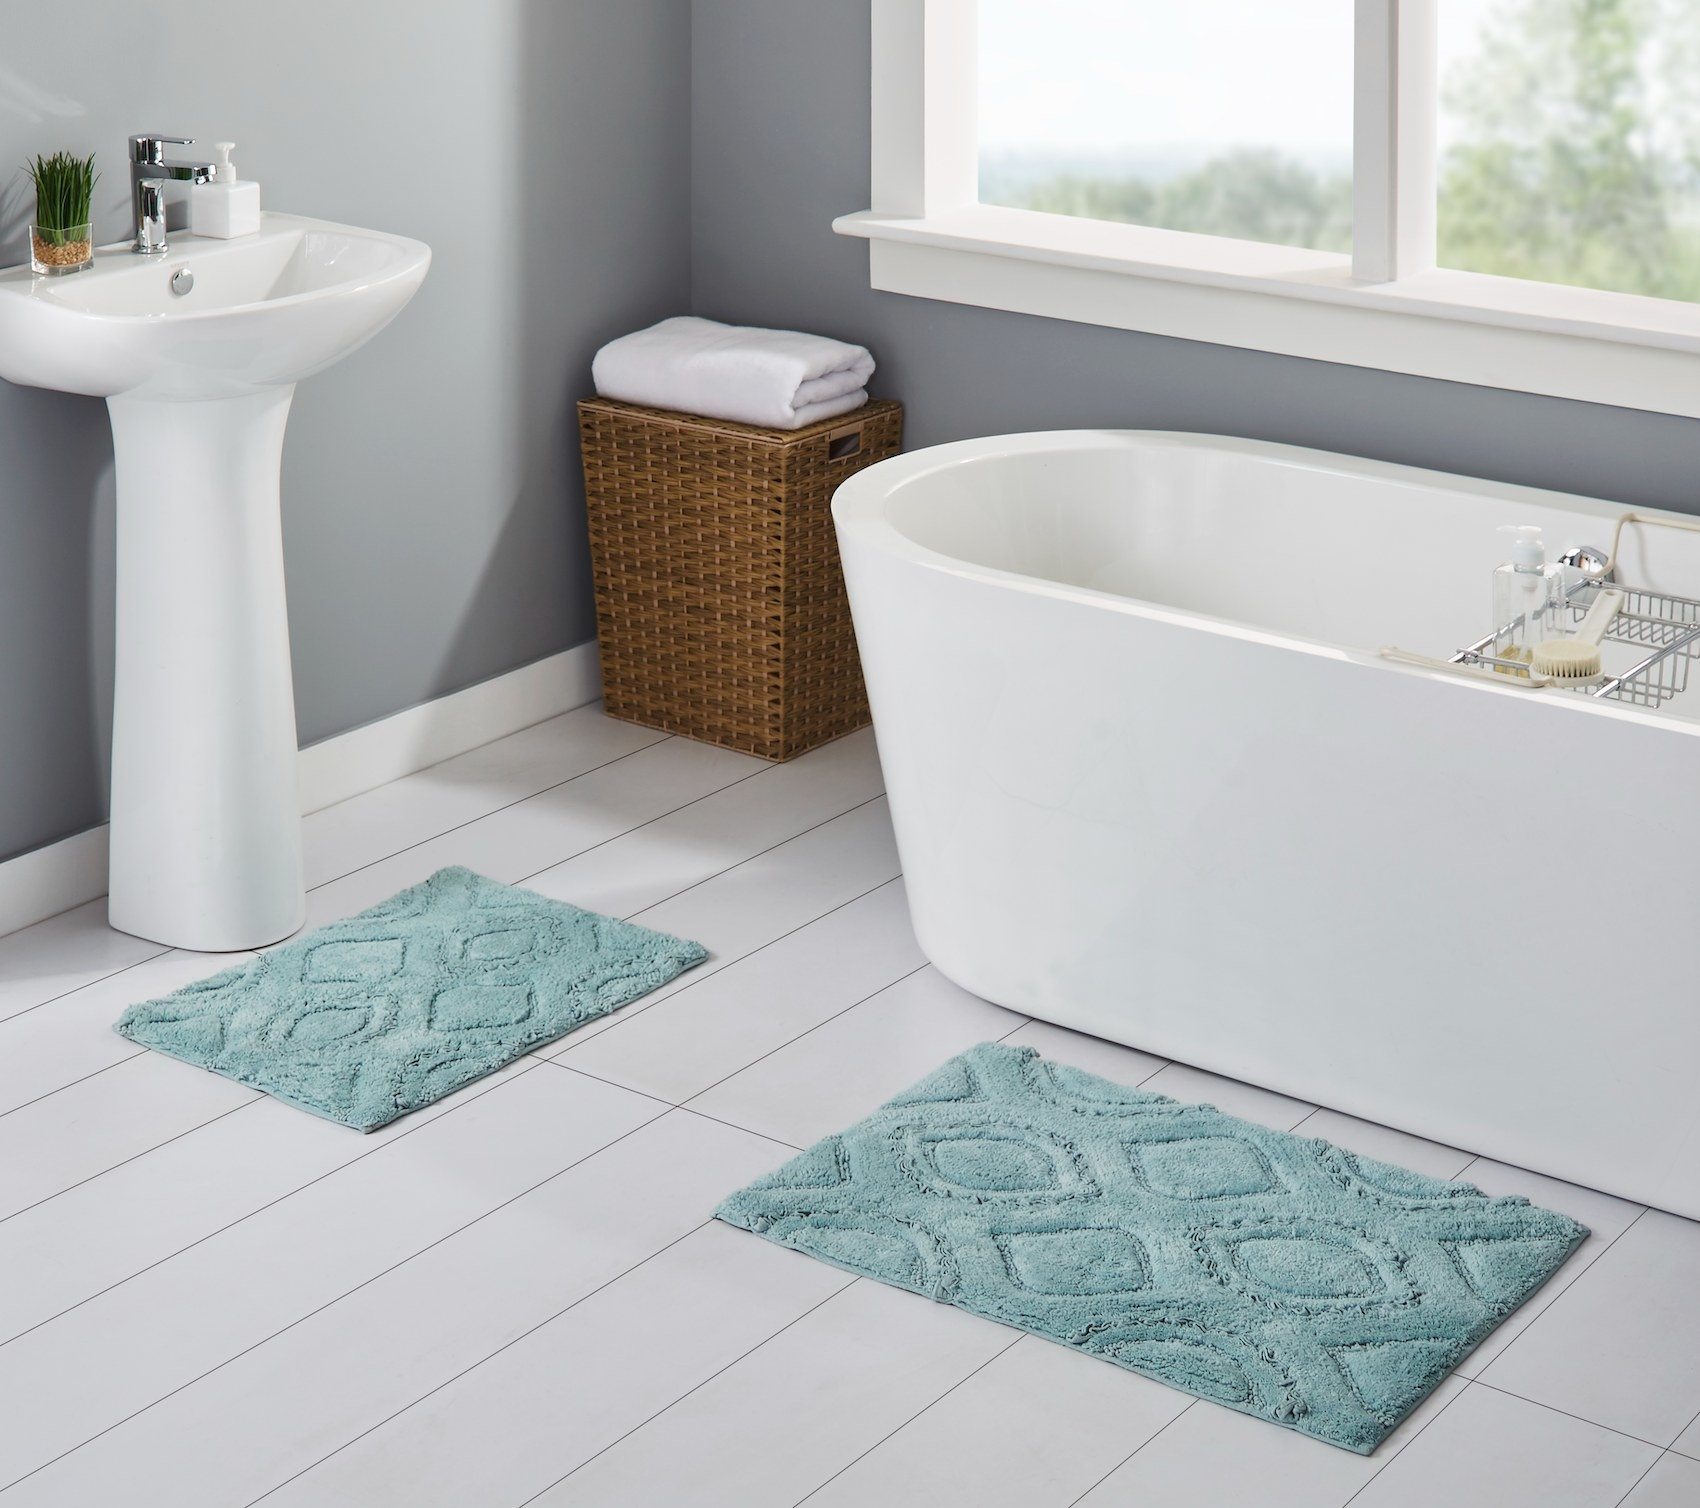 The rug set in a bathroom with the smaller rug underneath a sink and the larger rug just outside a bathtub